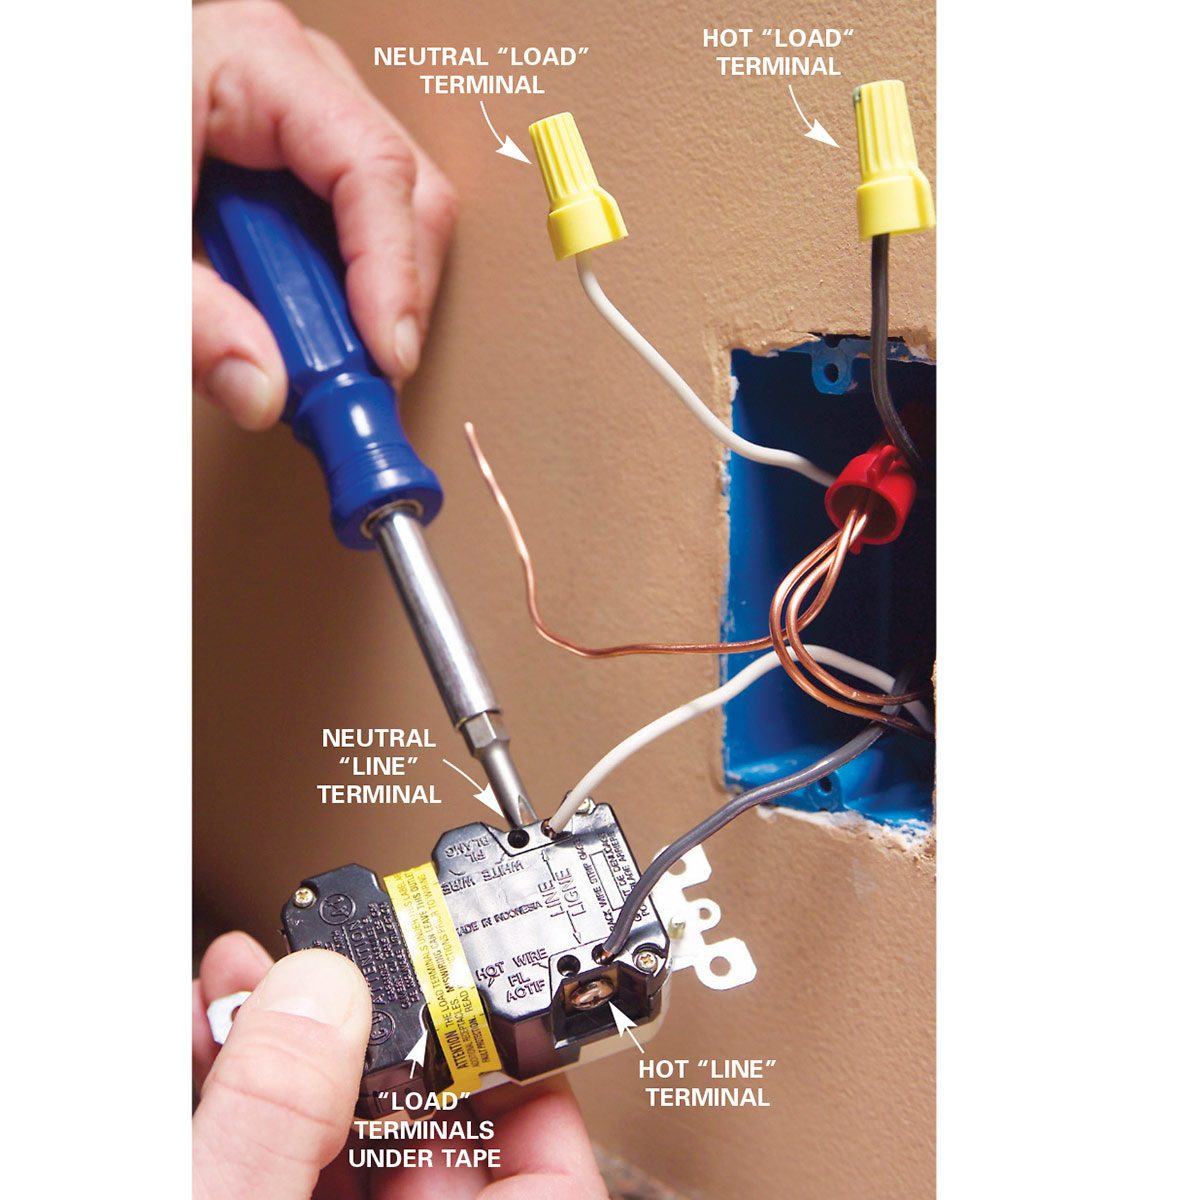 hight resolution of wiring a switch and outlet the safe and easy way family handyman don t wire